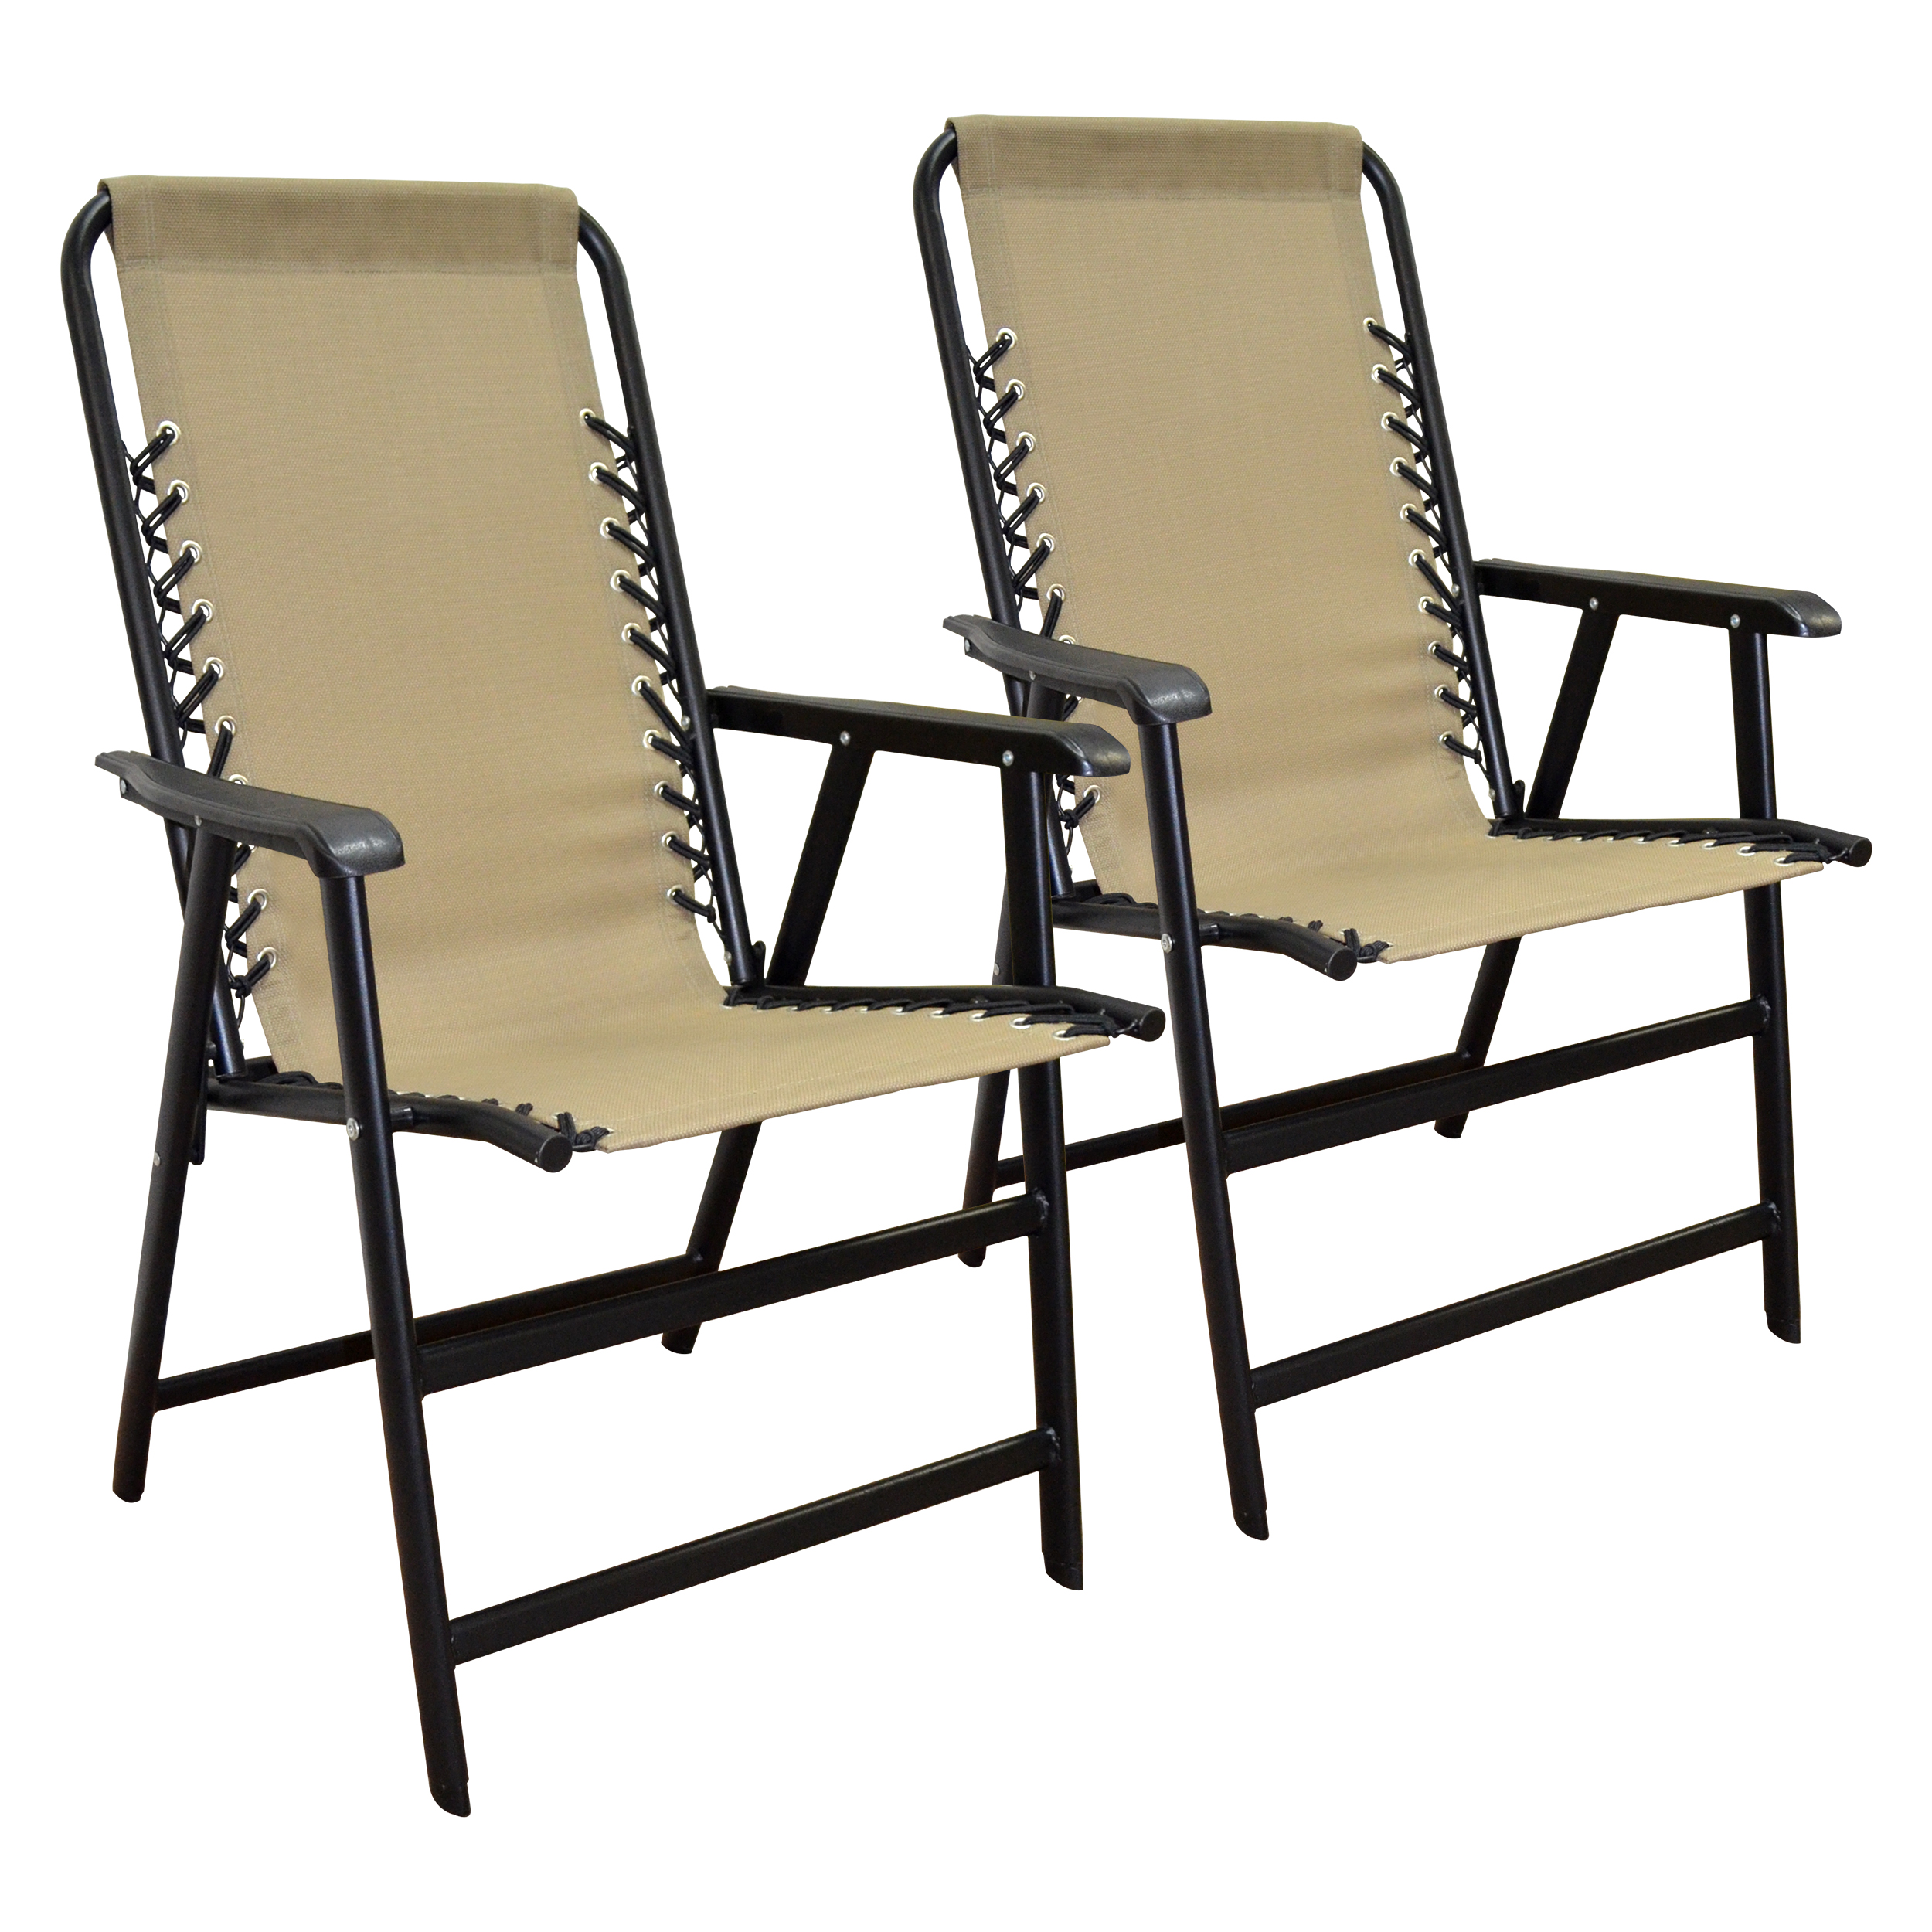 Suspension Folding chair Beige 2PACK